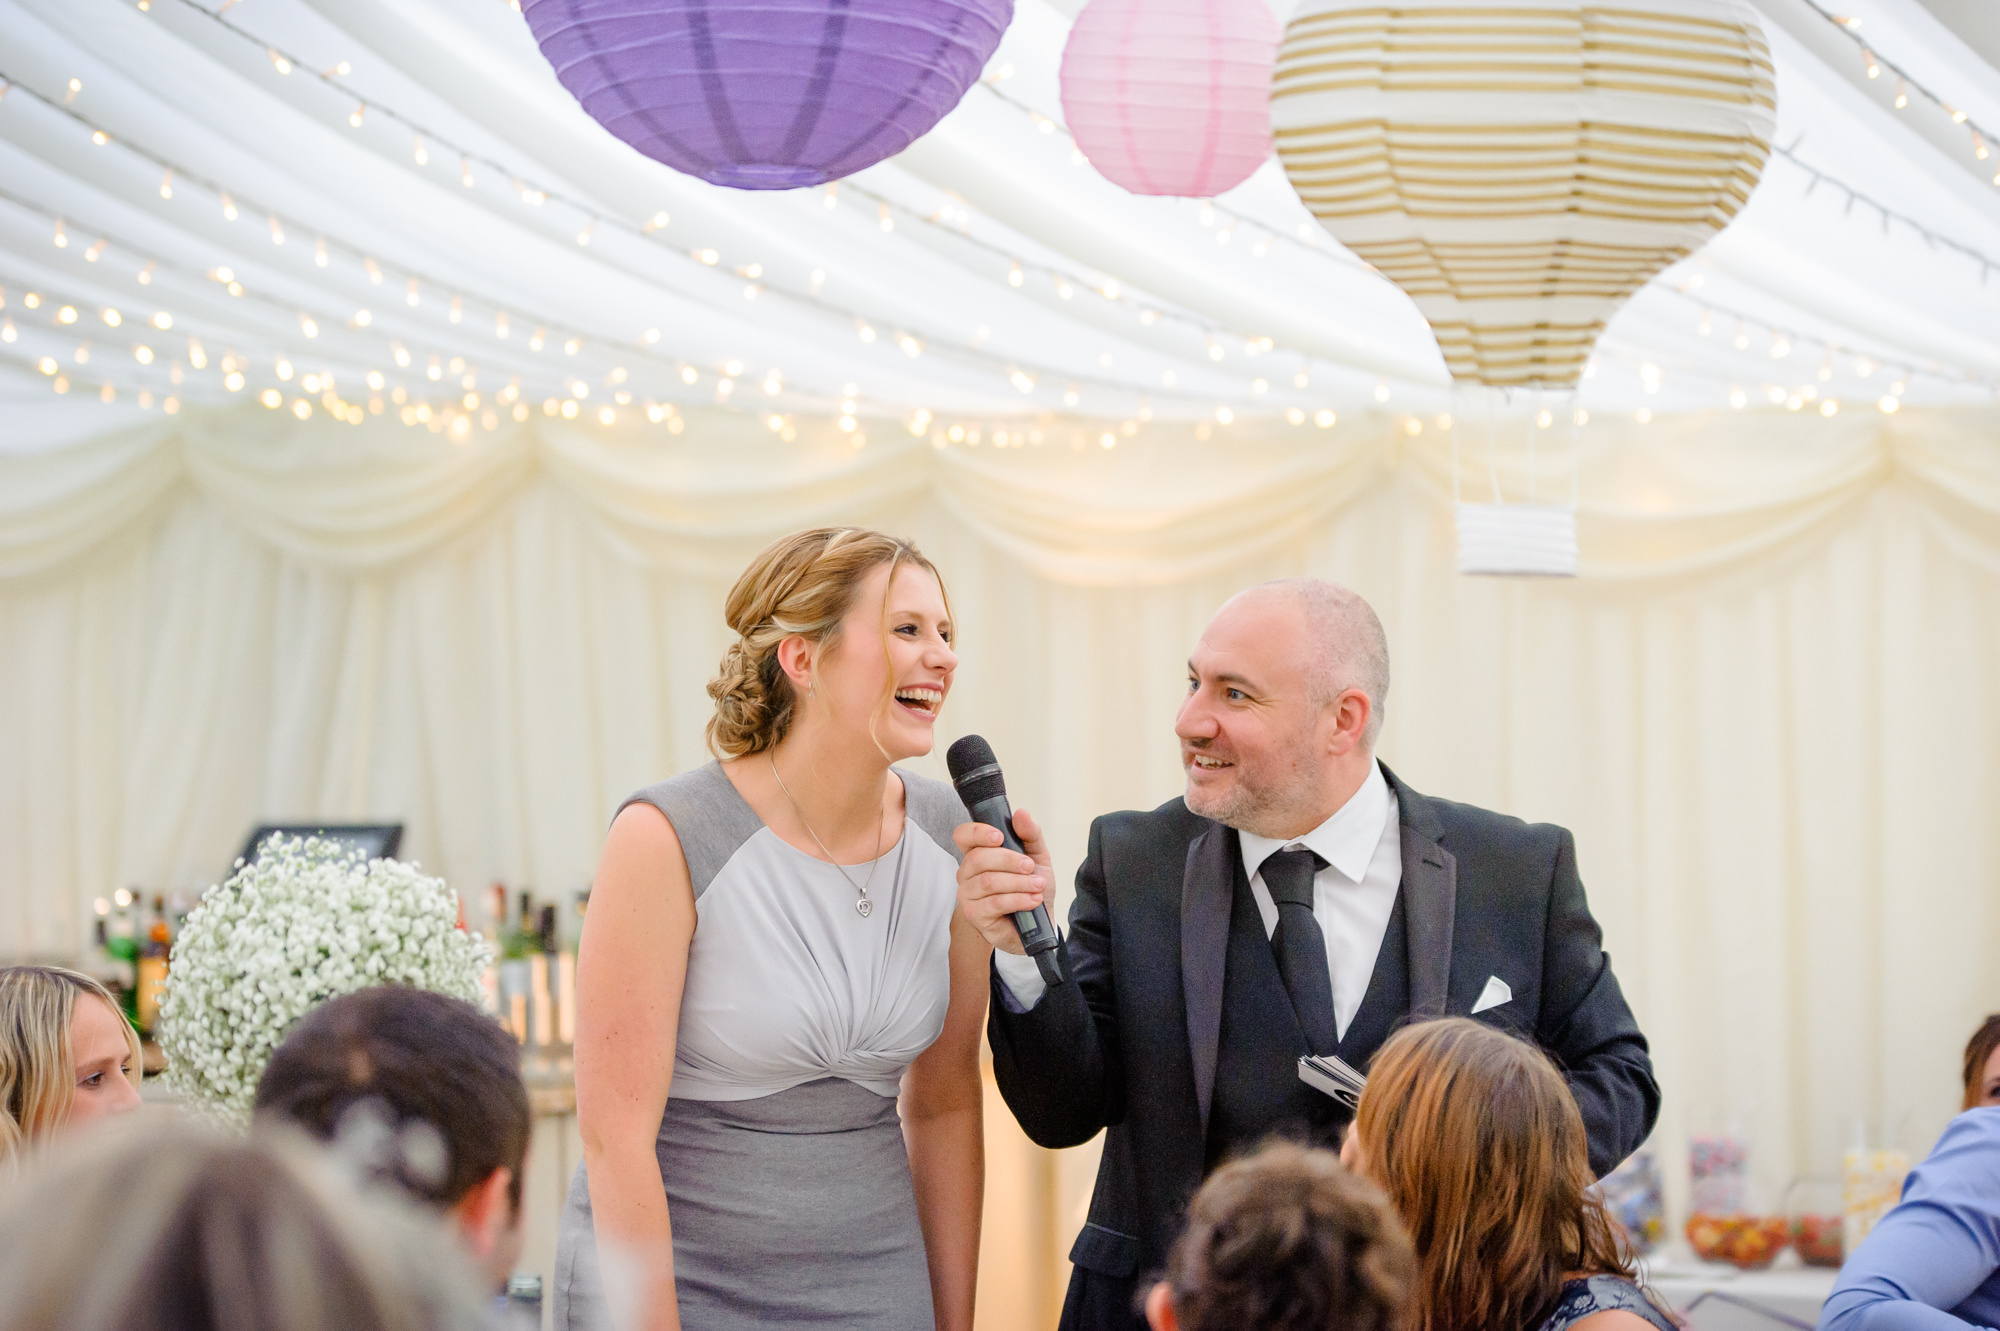 Pat Mulligan the wedding host questionning a guest